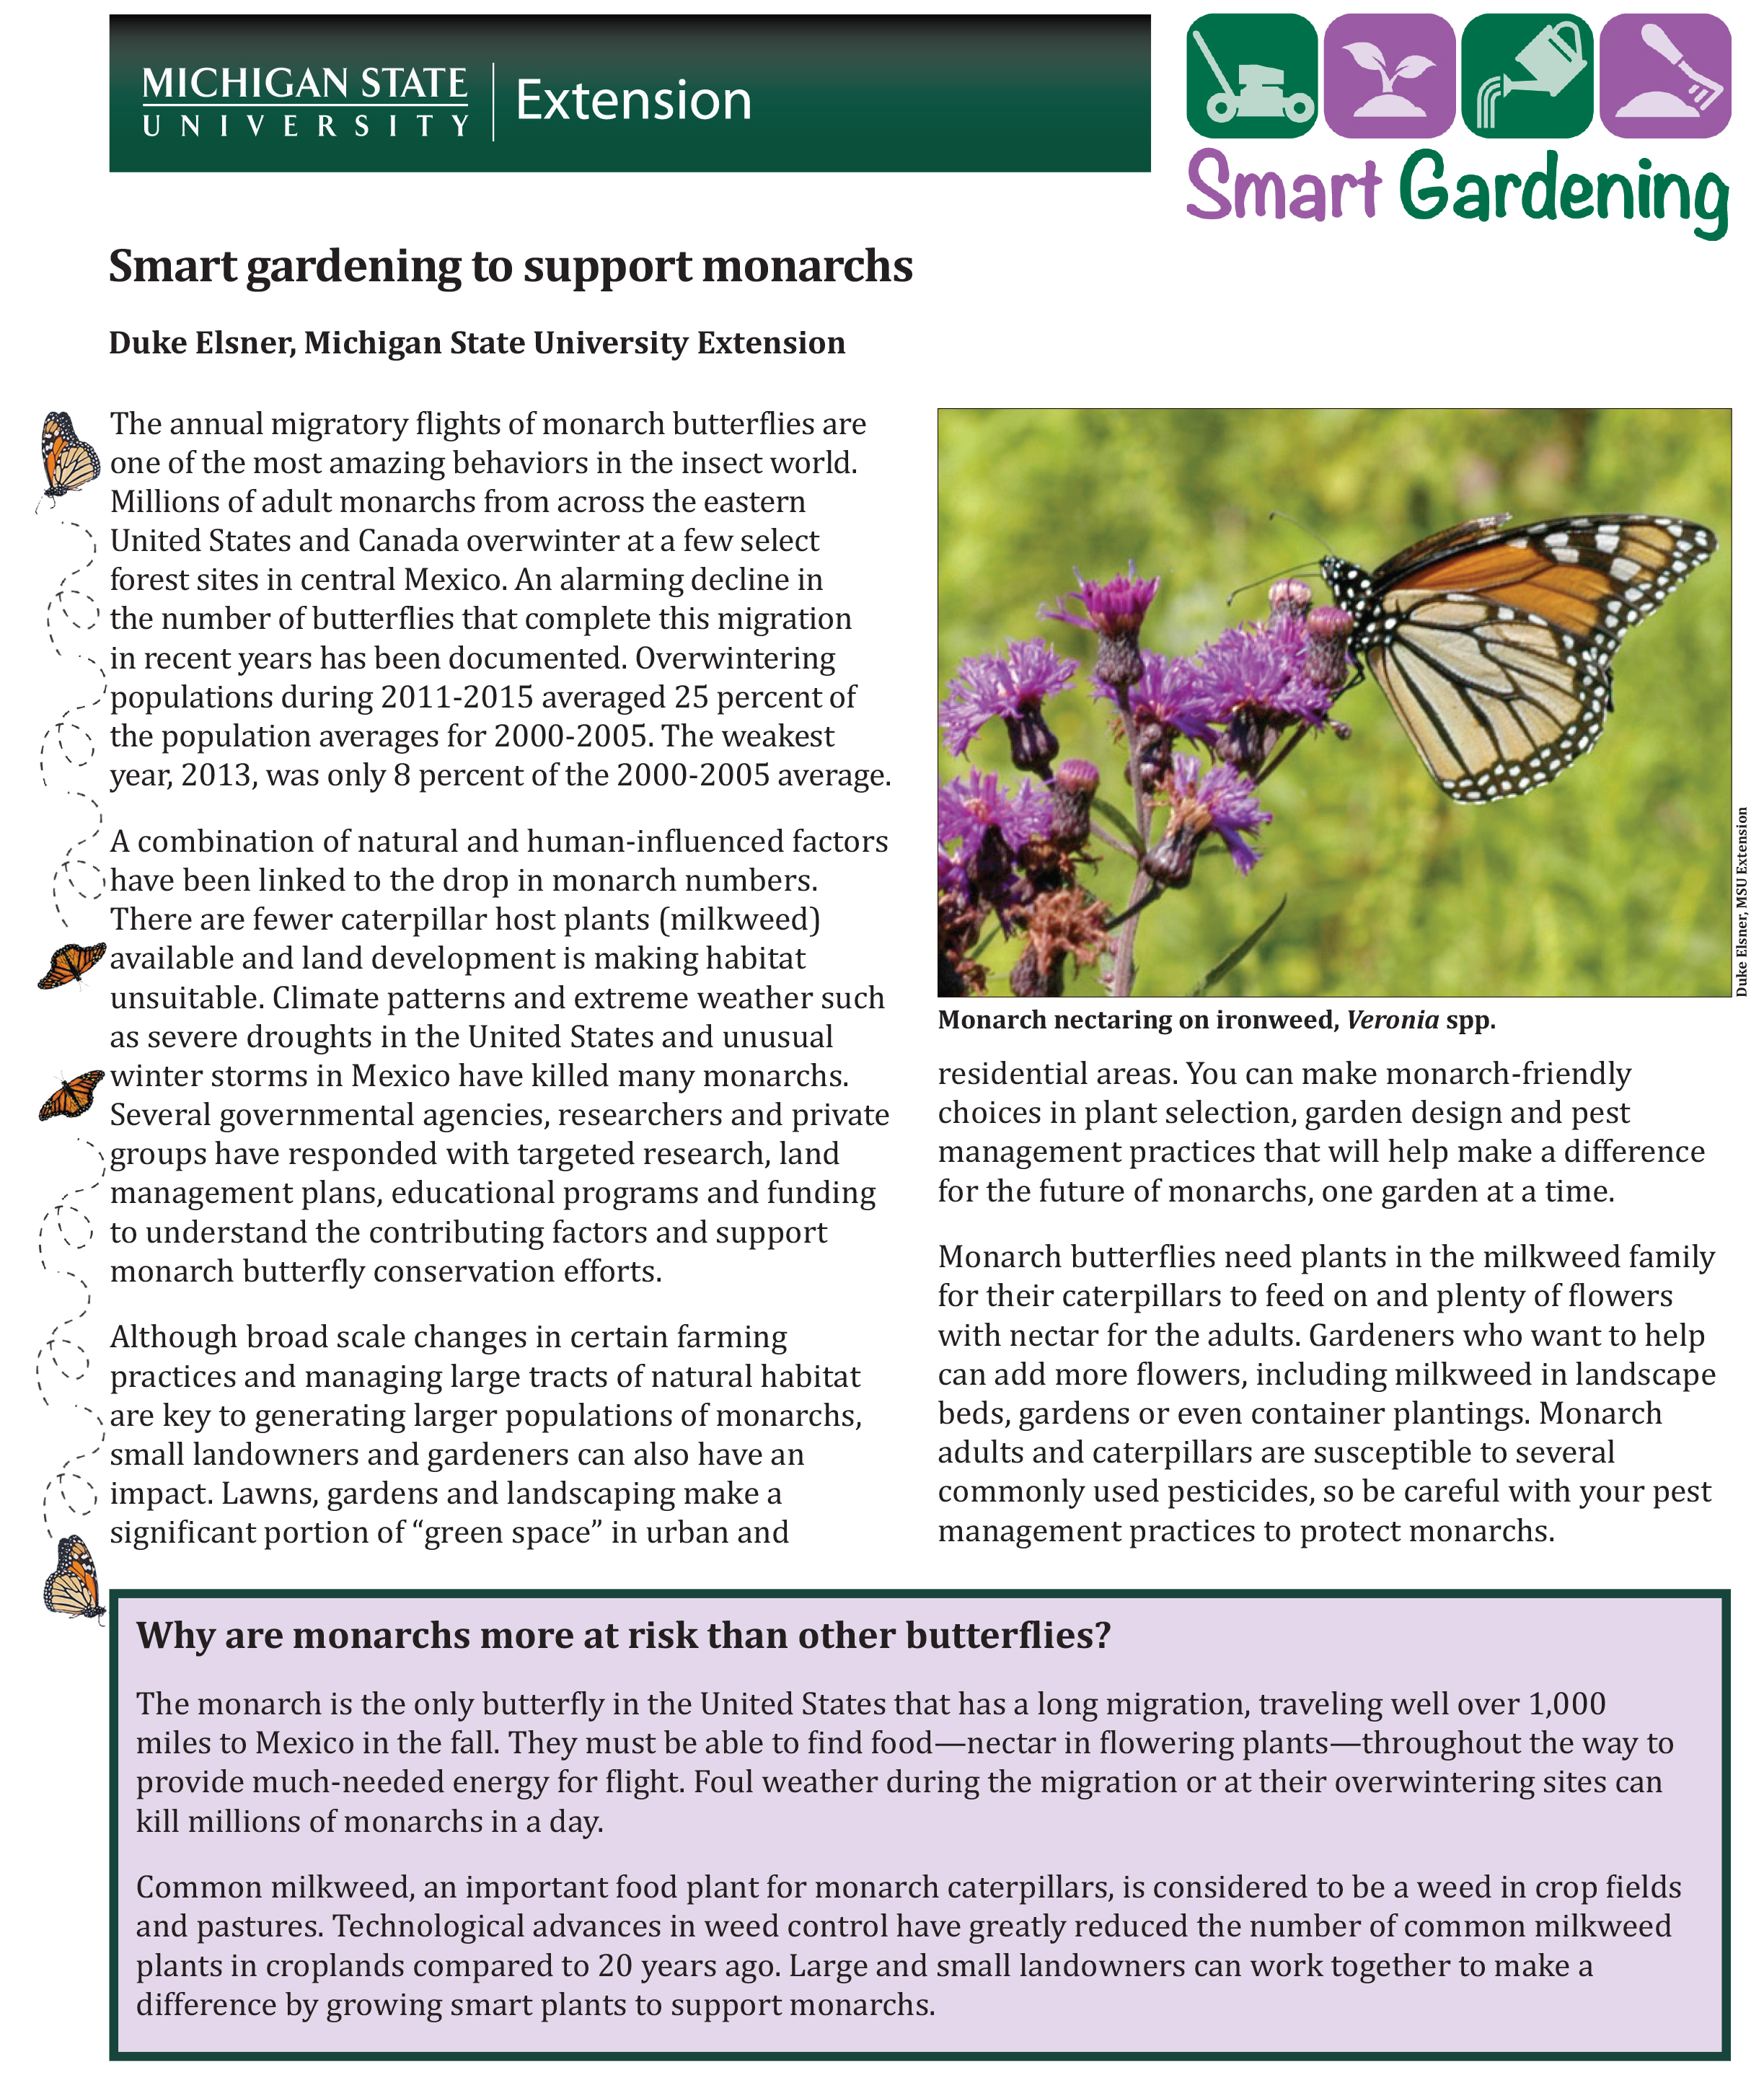 PDF cover of Smart Gardening to Support Monarchs